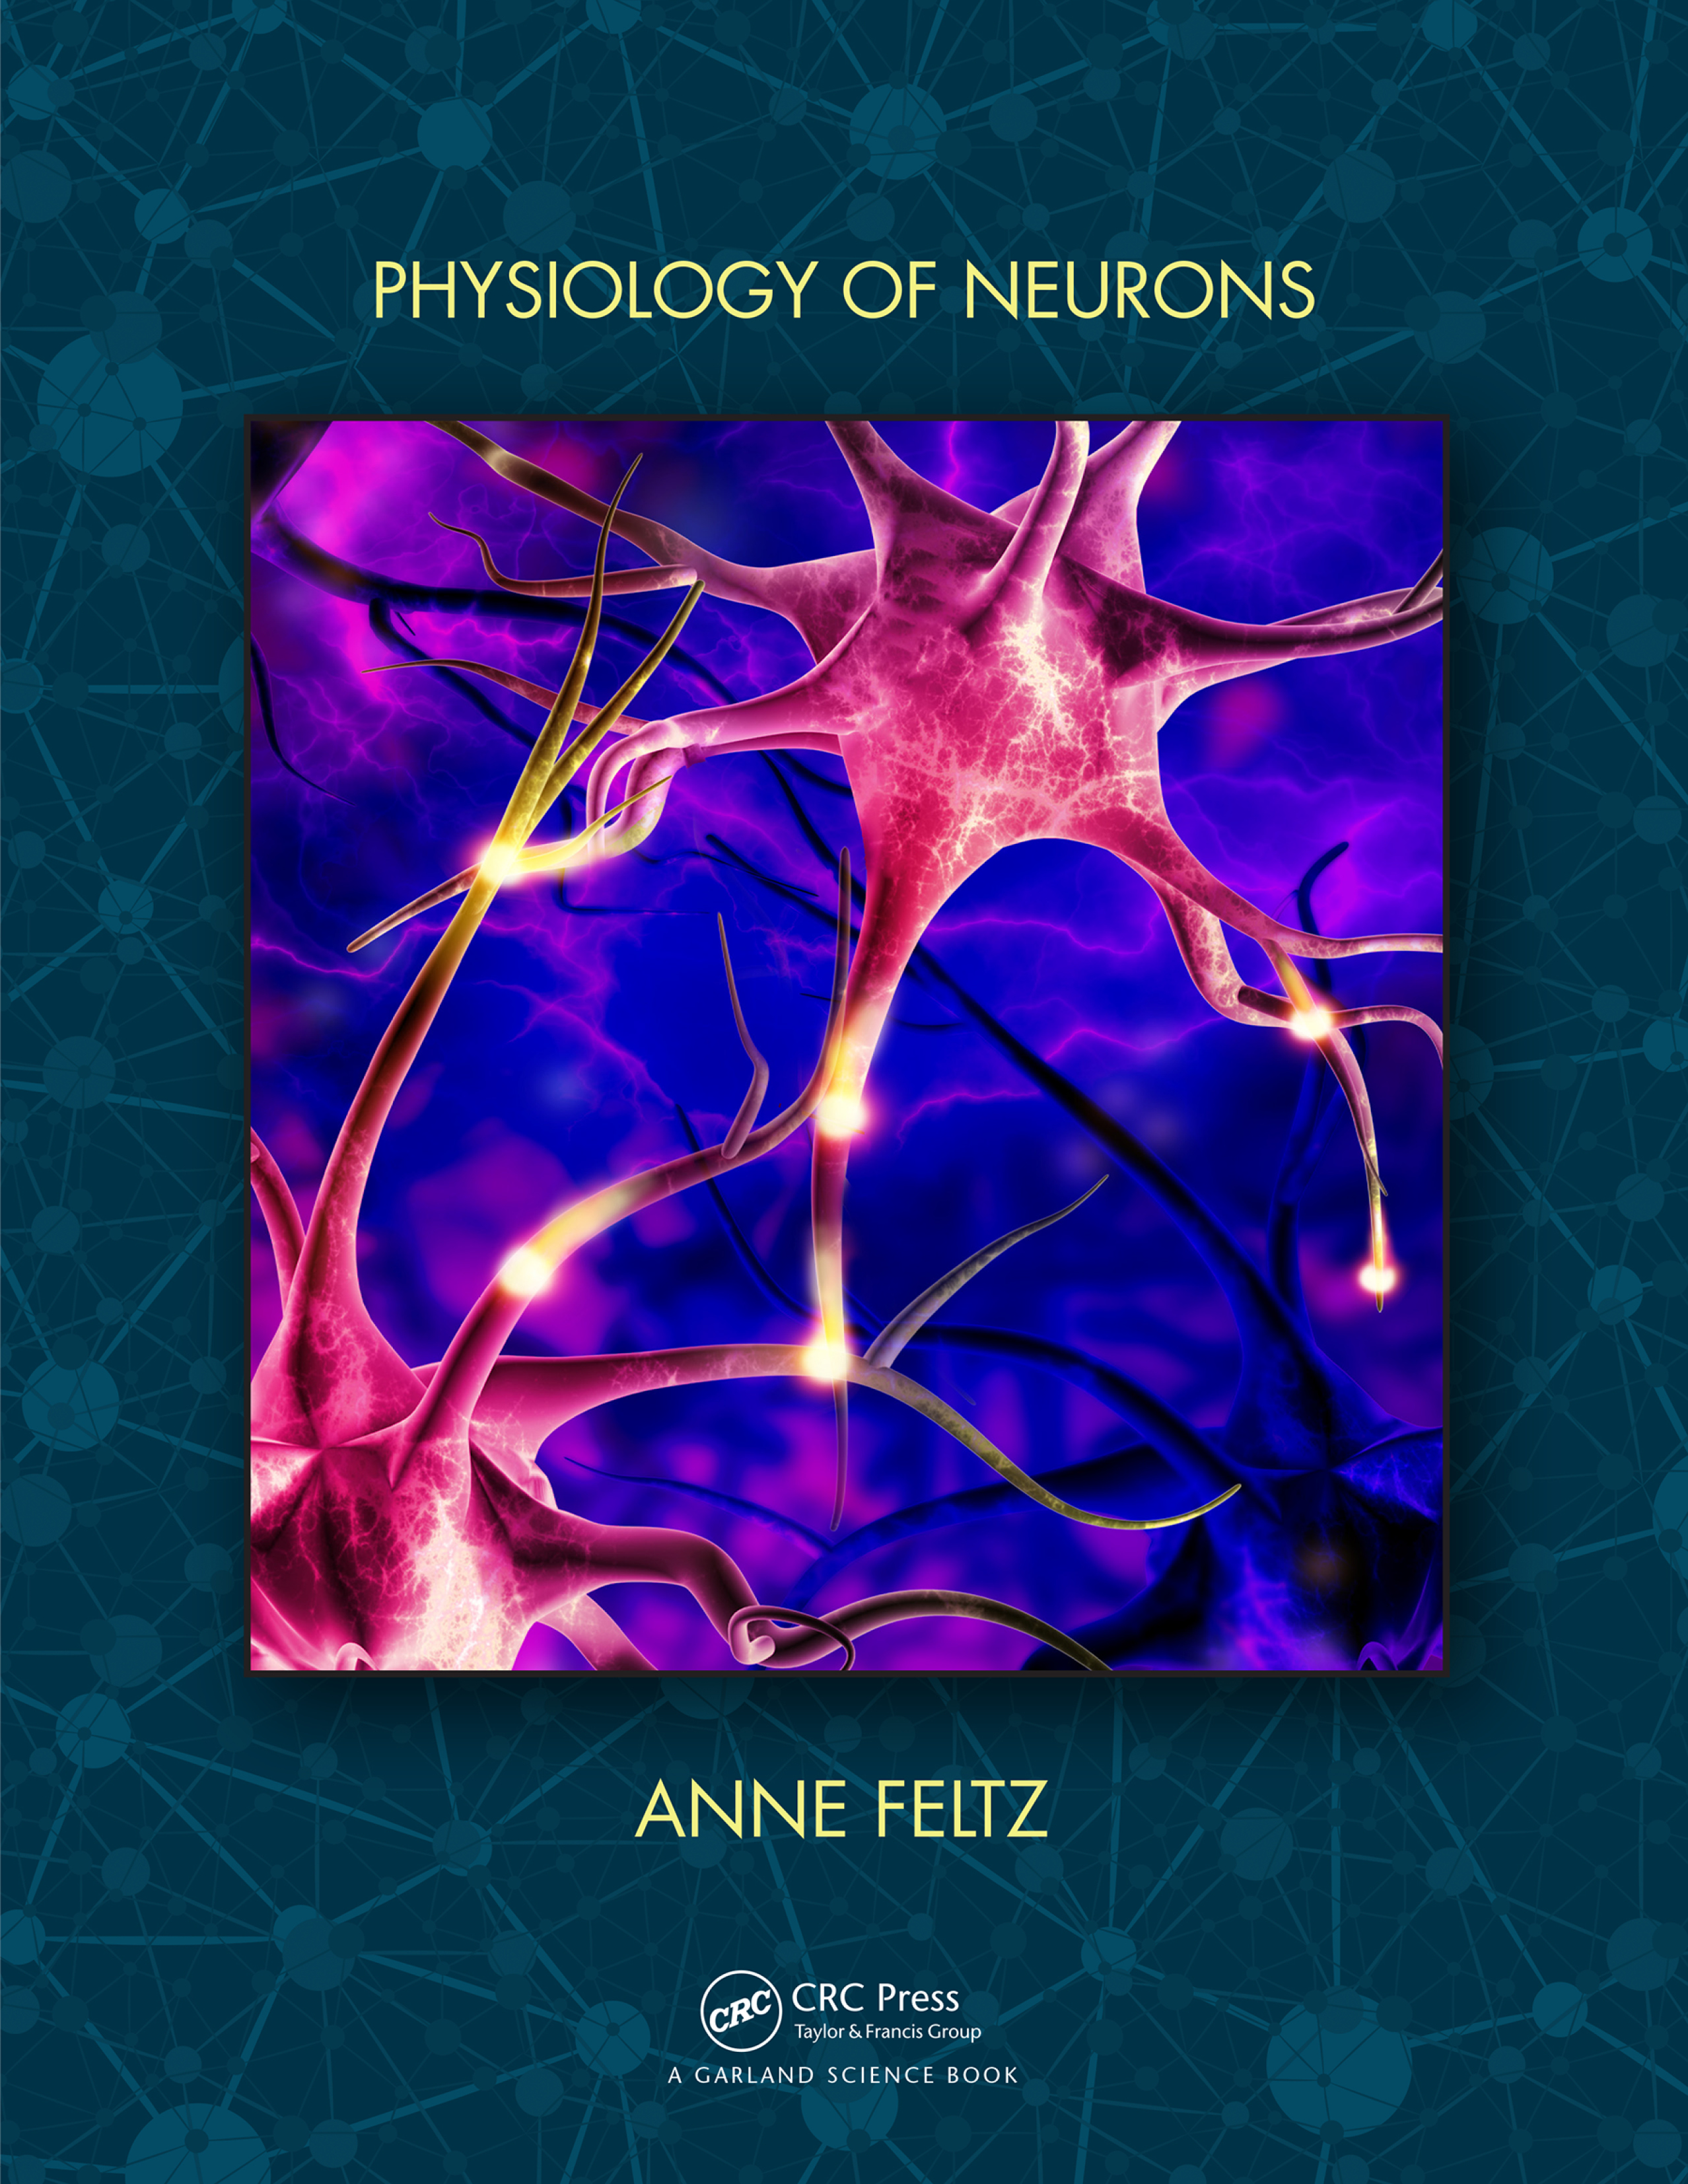 Physiology of Neurons book cover